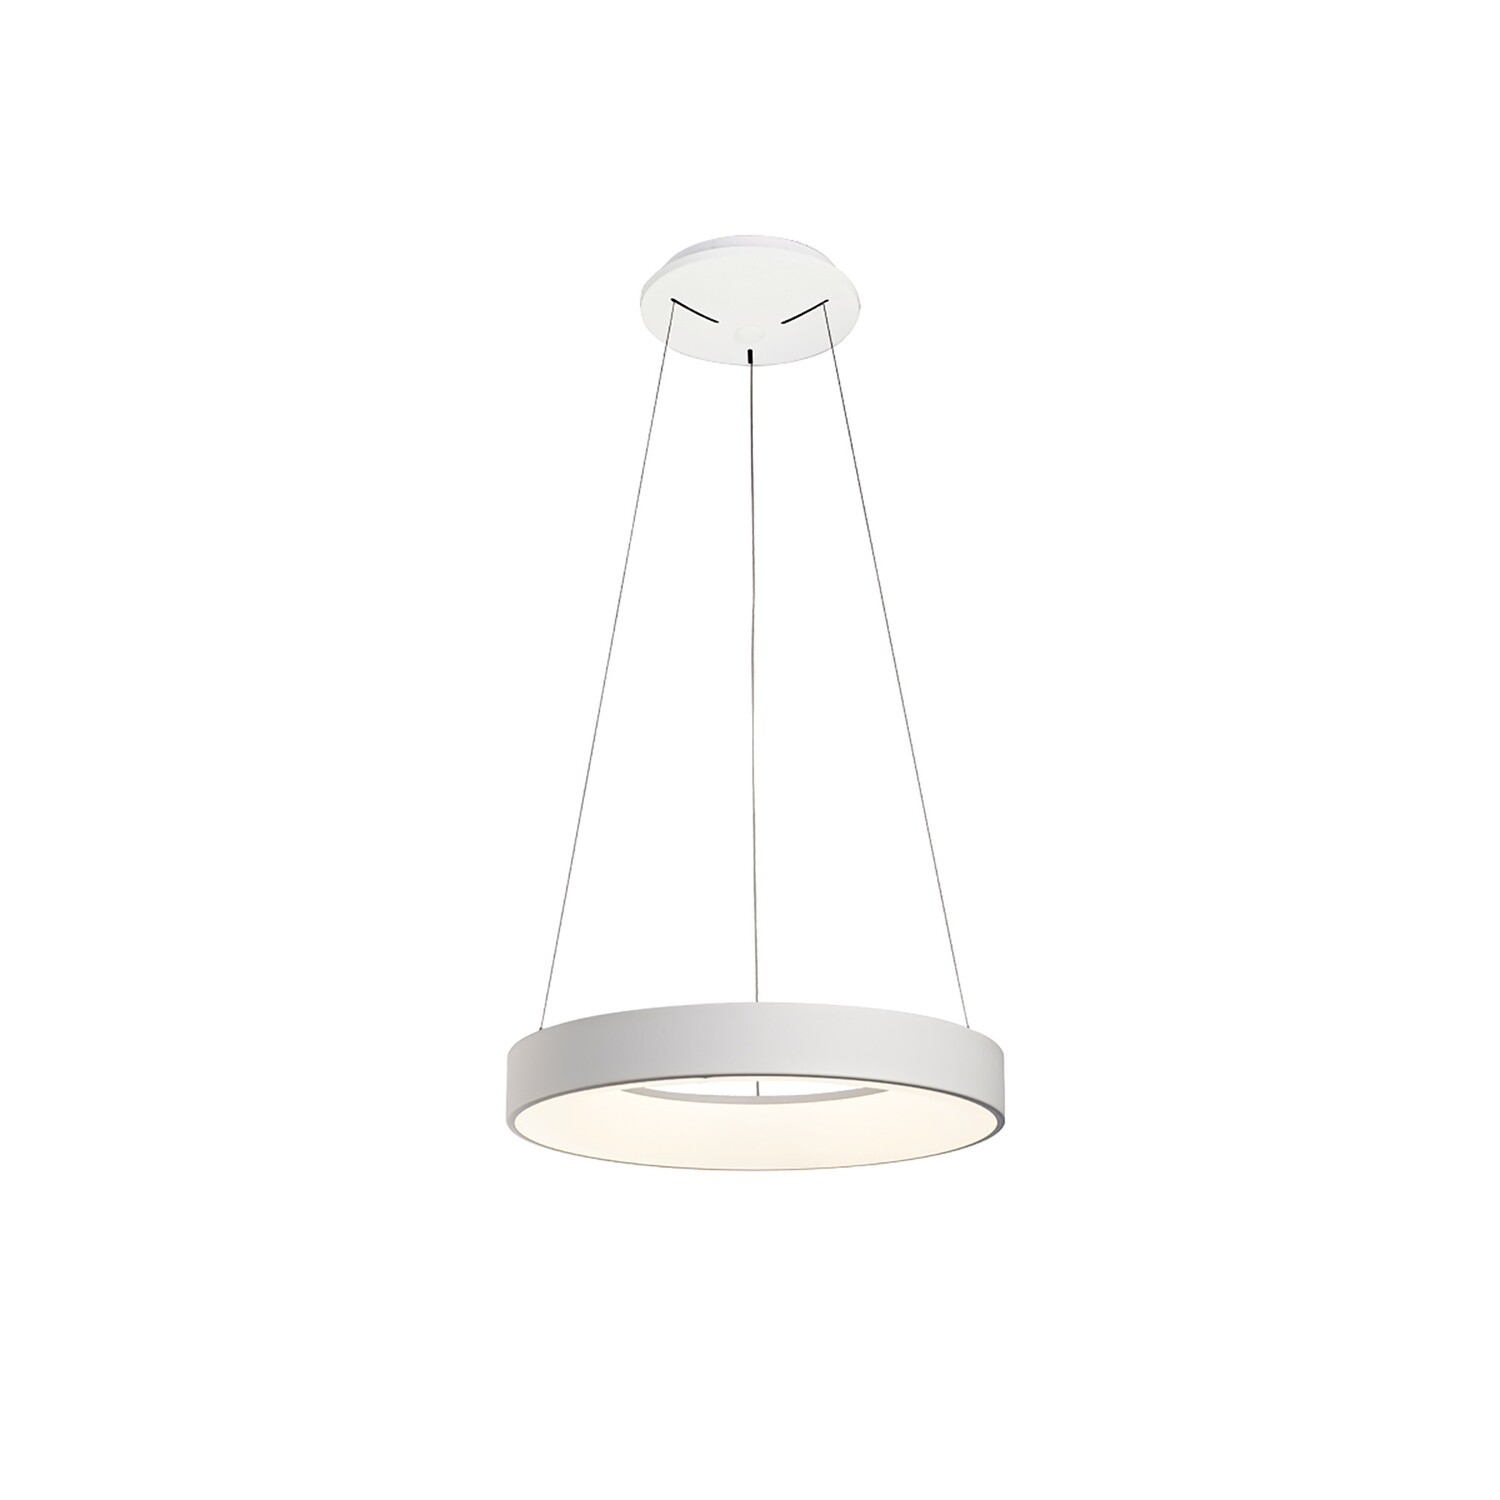 Niseko Dimmable Ring Pendant 45cm Round 30W LED 3000K, 2100lm, White